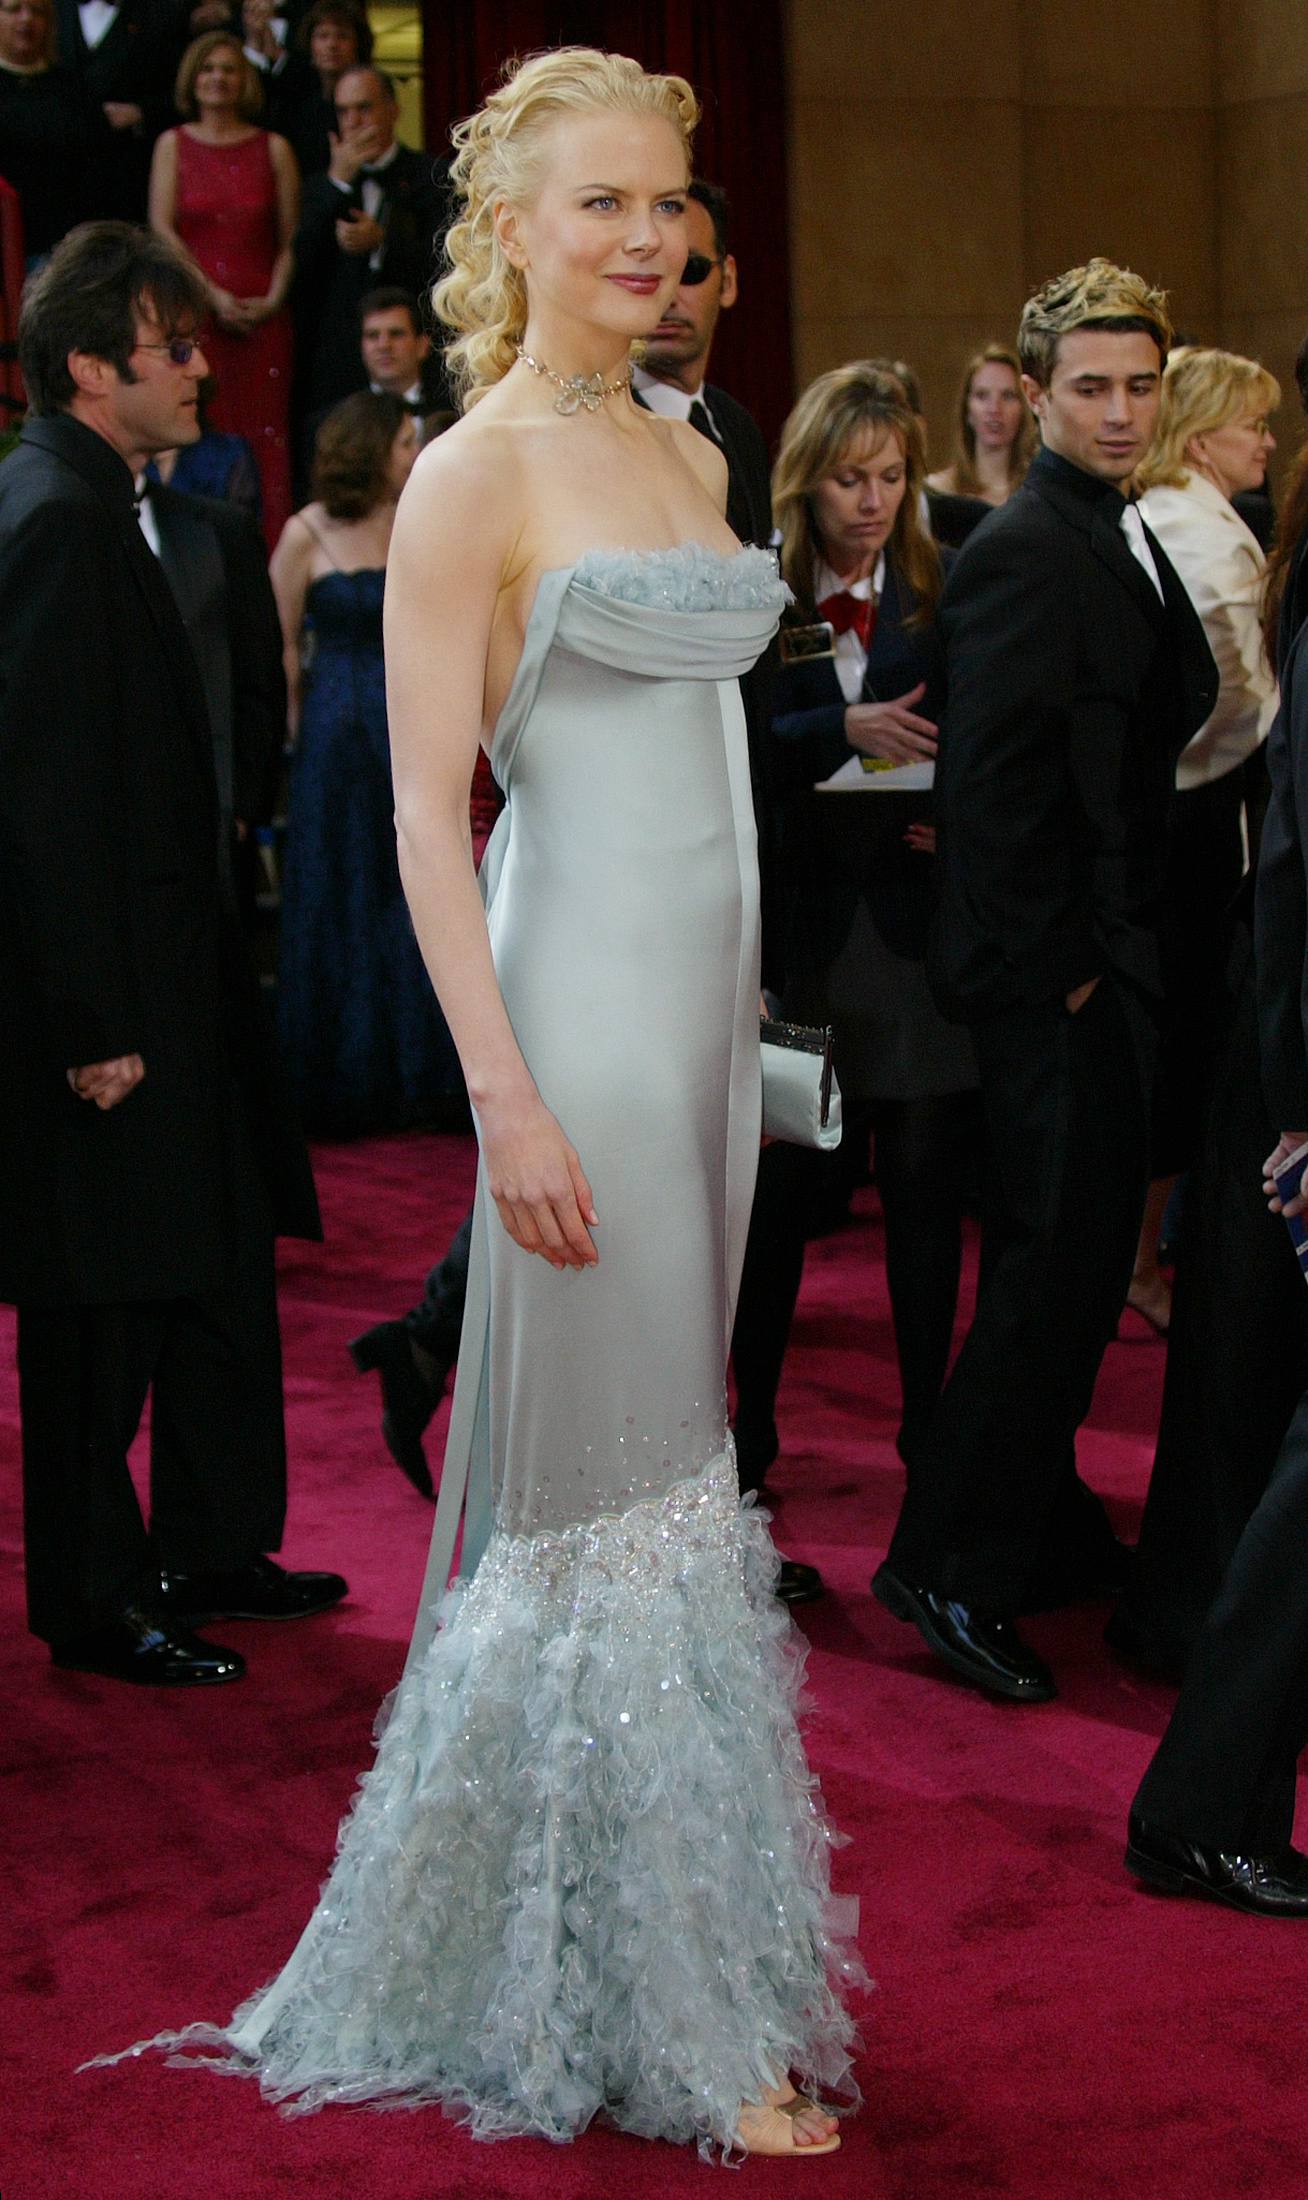 Actress Nicole Kidman arrives for the 76th annual Academy Awards at the Kodak Theatre in Hollywood, California February 29, 2004. Kidman is presenting an award during the Academy Awards ceremony. REUTERS/Eric Gaillard KW/MA - RP4DRIBDQUAA